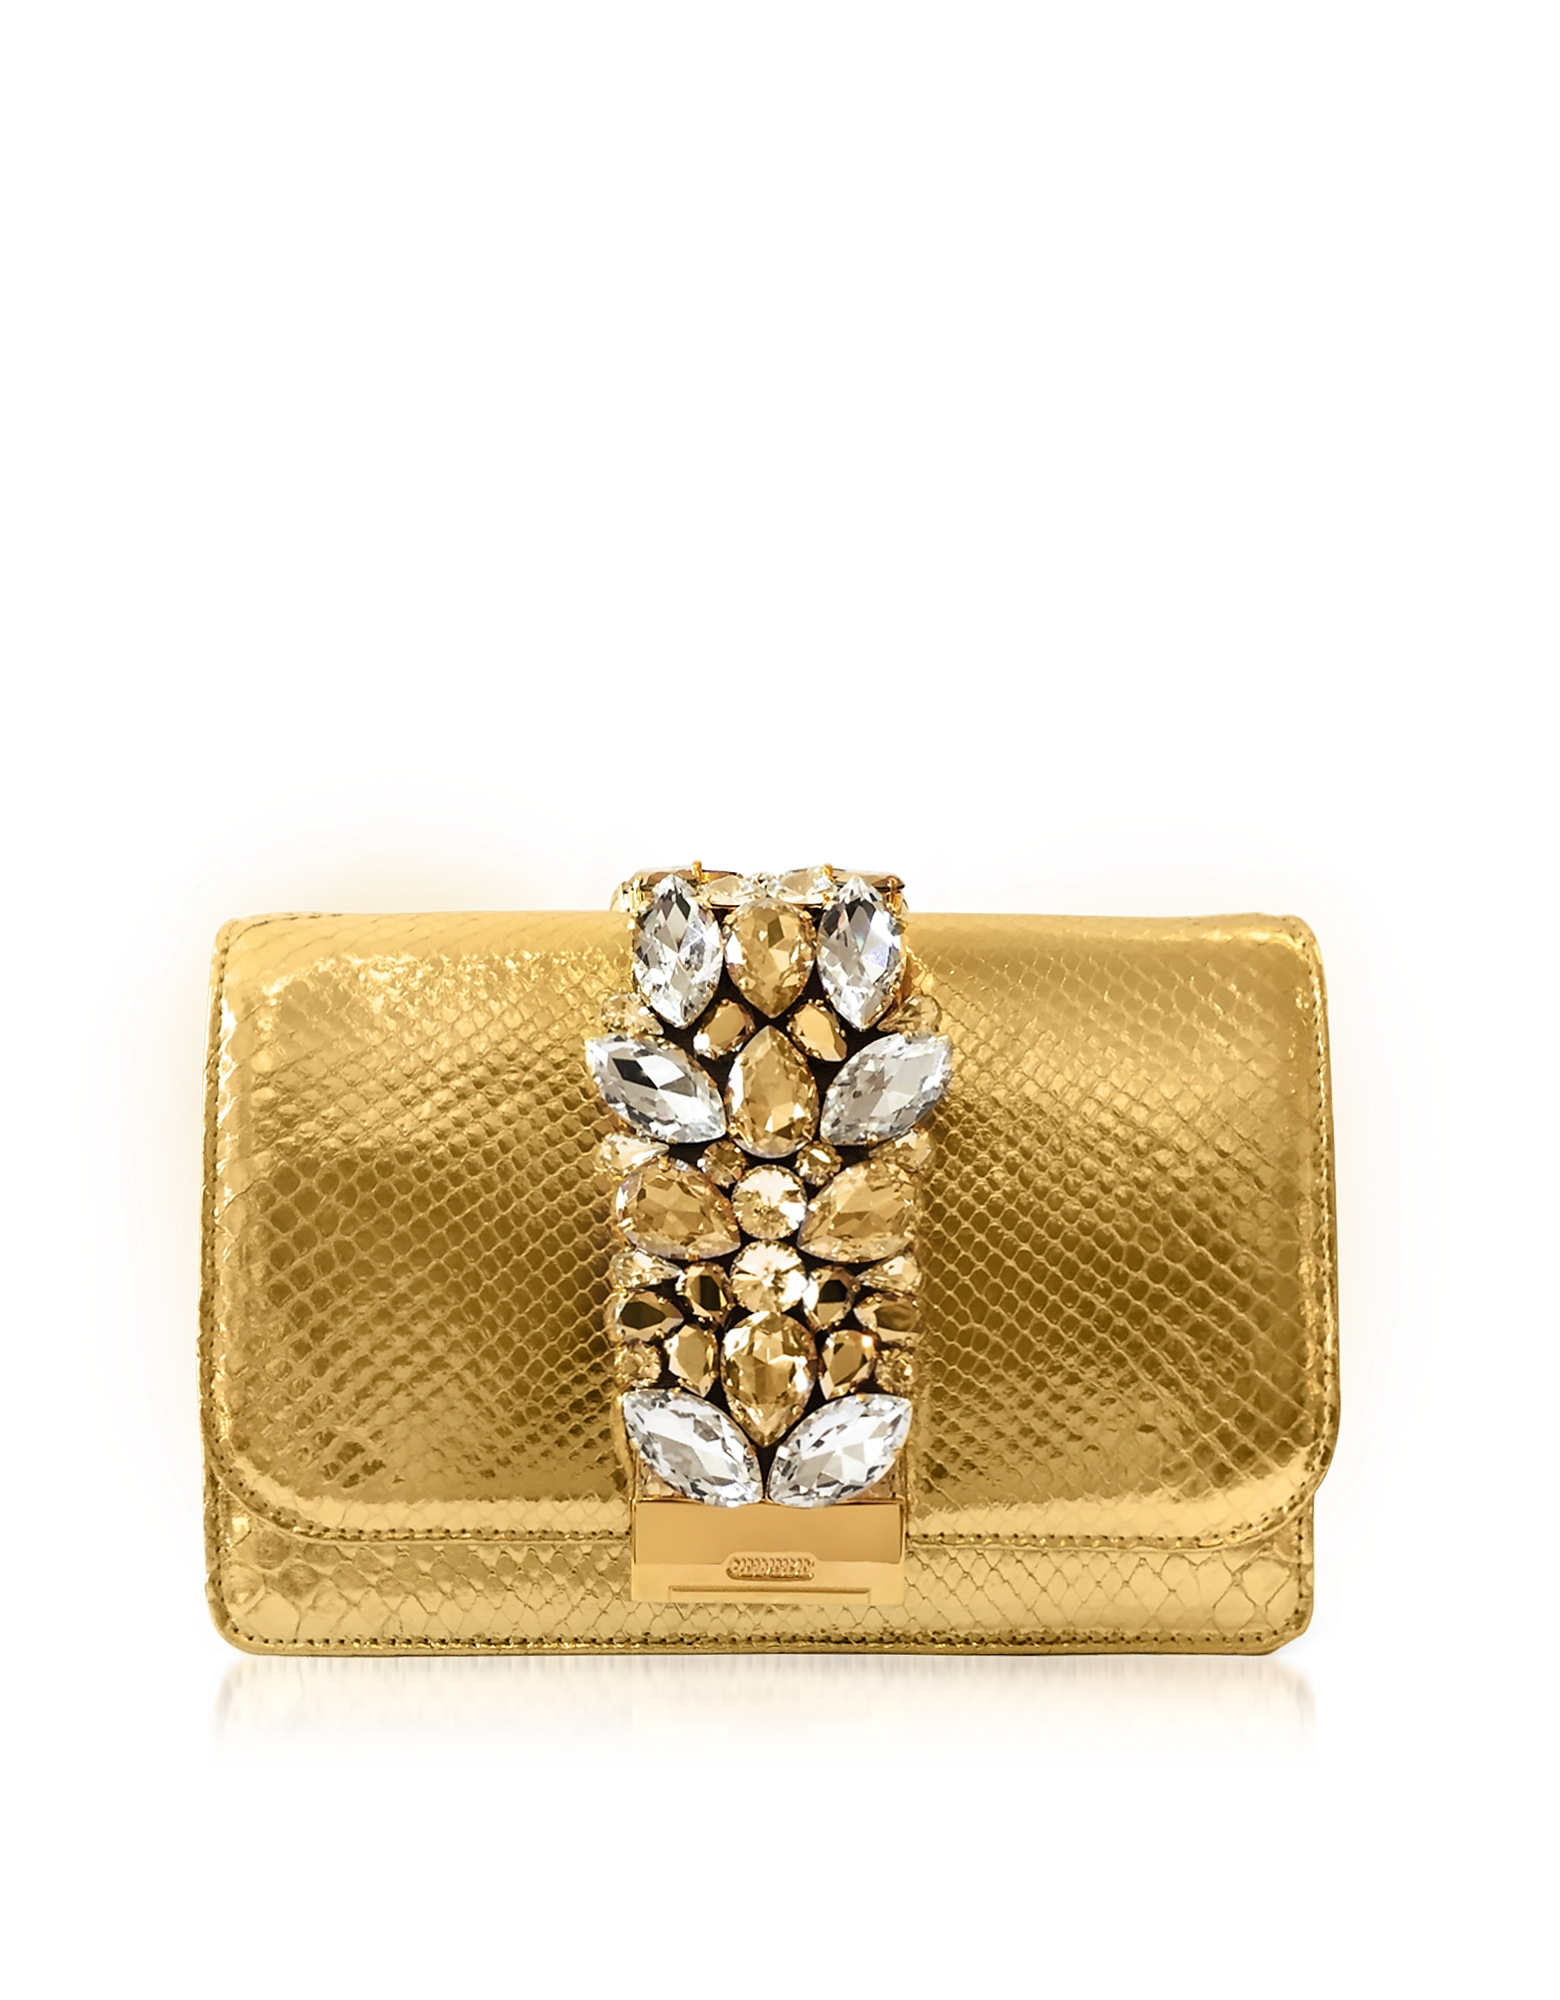 Gedebe Handbags, Cliky Gold Python Clutch w/Crystals